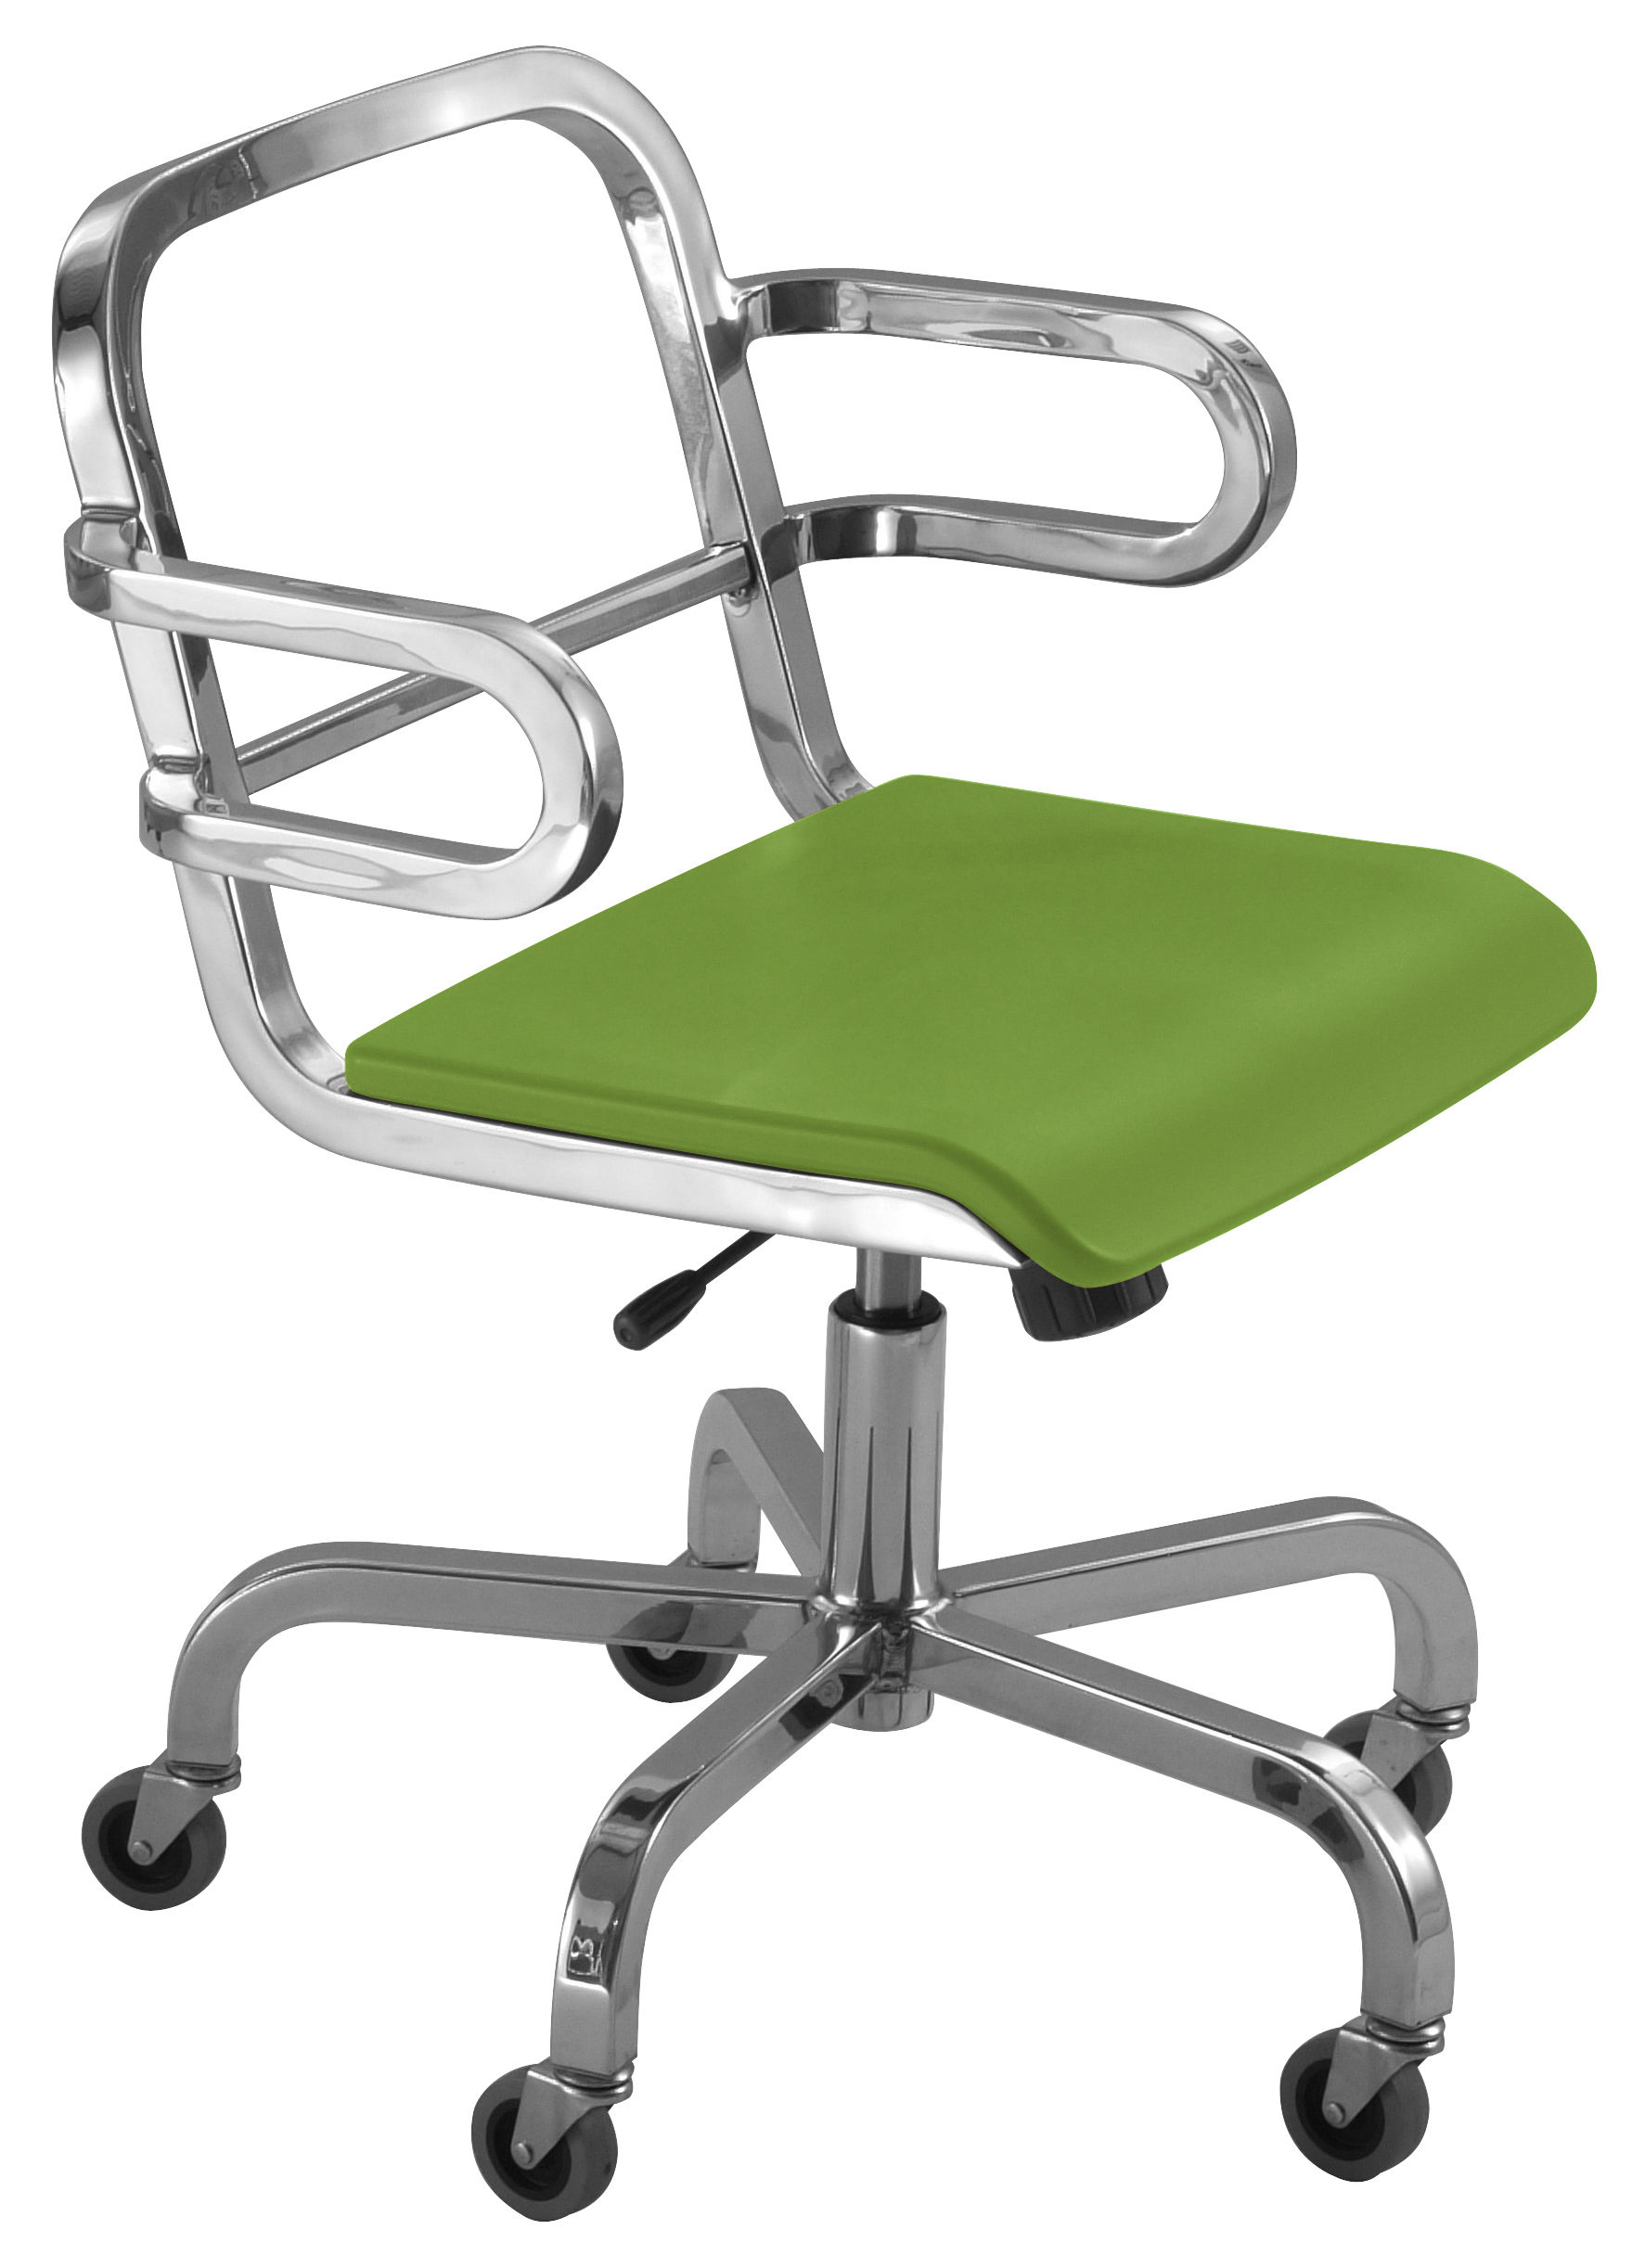 Furniture - Teen furniture - Nine-O Armchair on casters by Emeco - Brushed aluminium / Green - Aluminium recyclé, Polyurethane